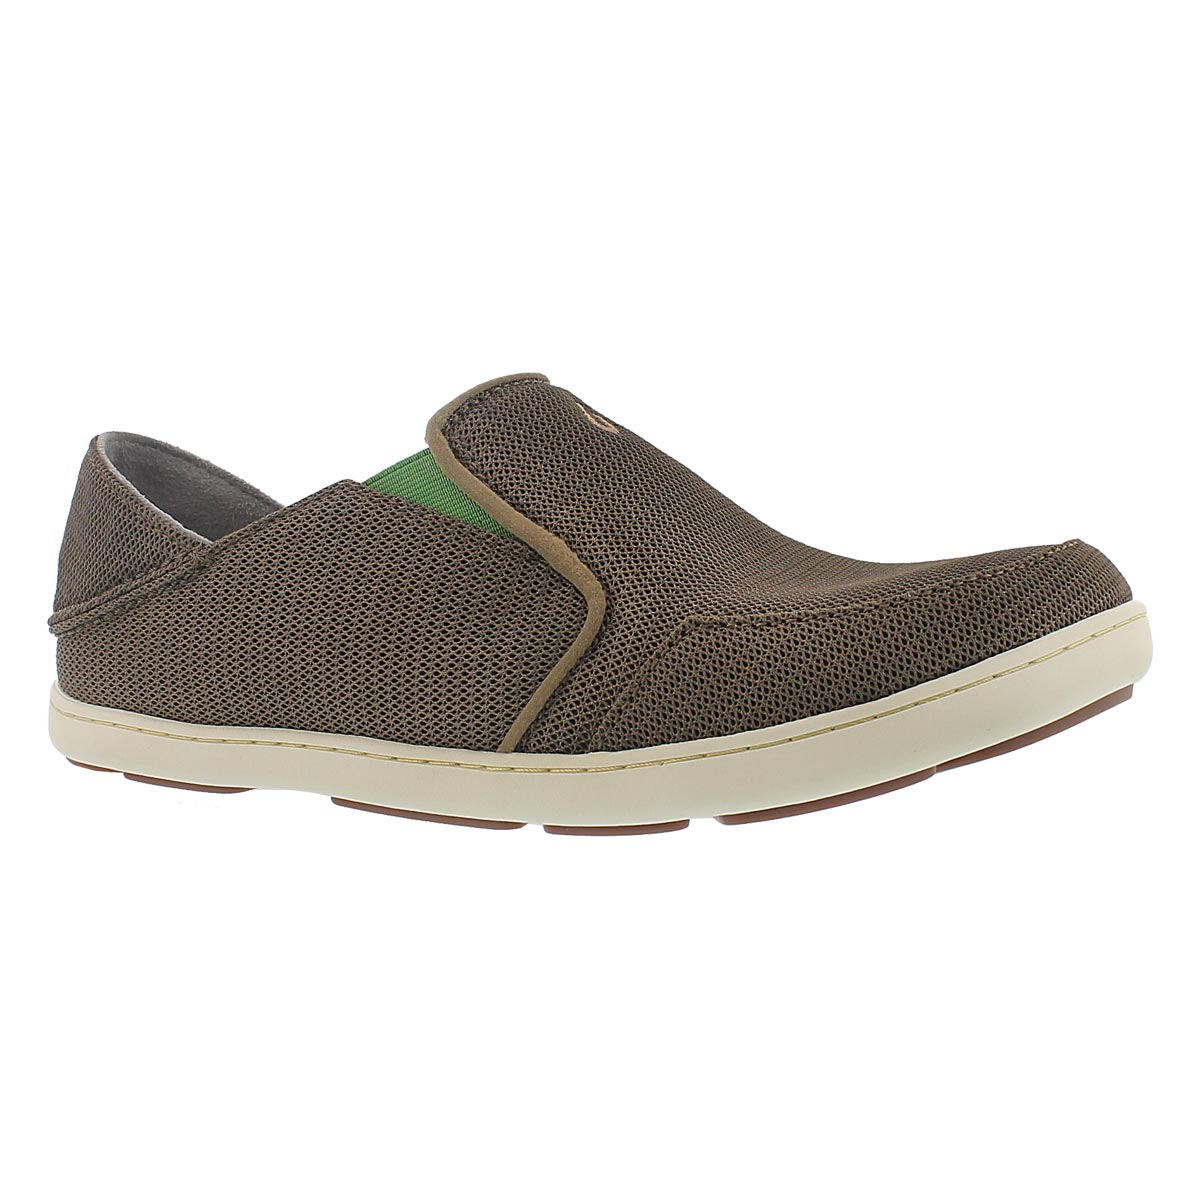 Men's NOHEA MESH mustang slip on casual shoes